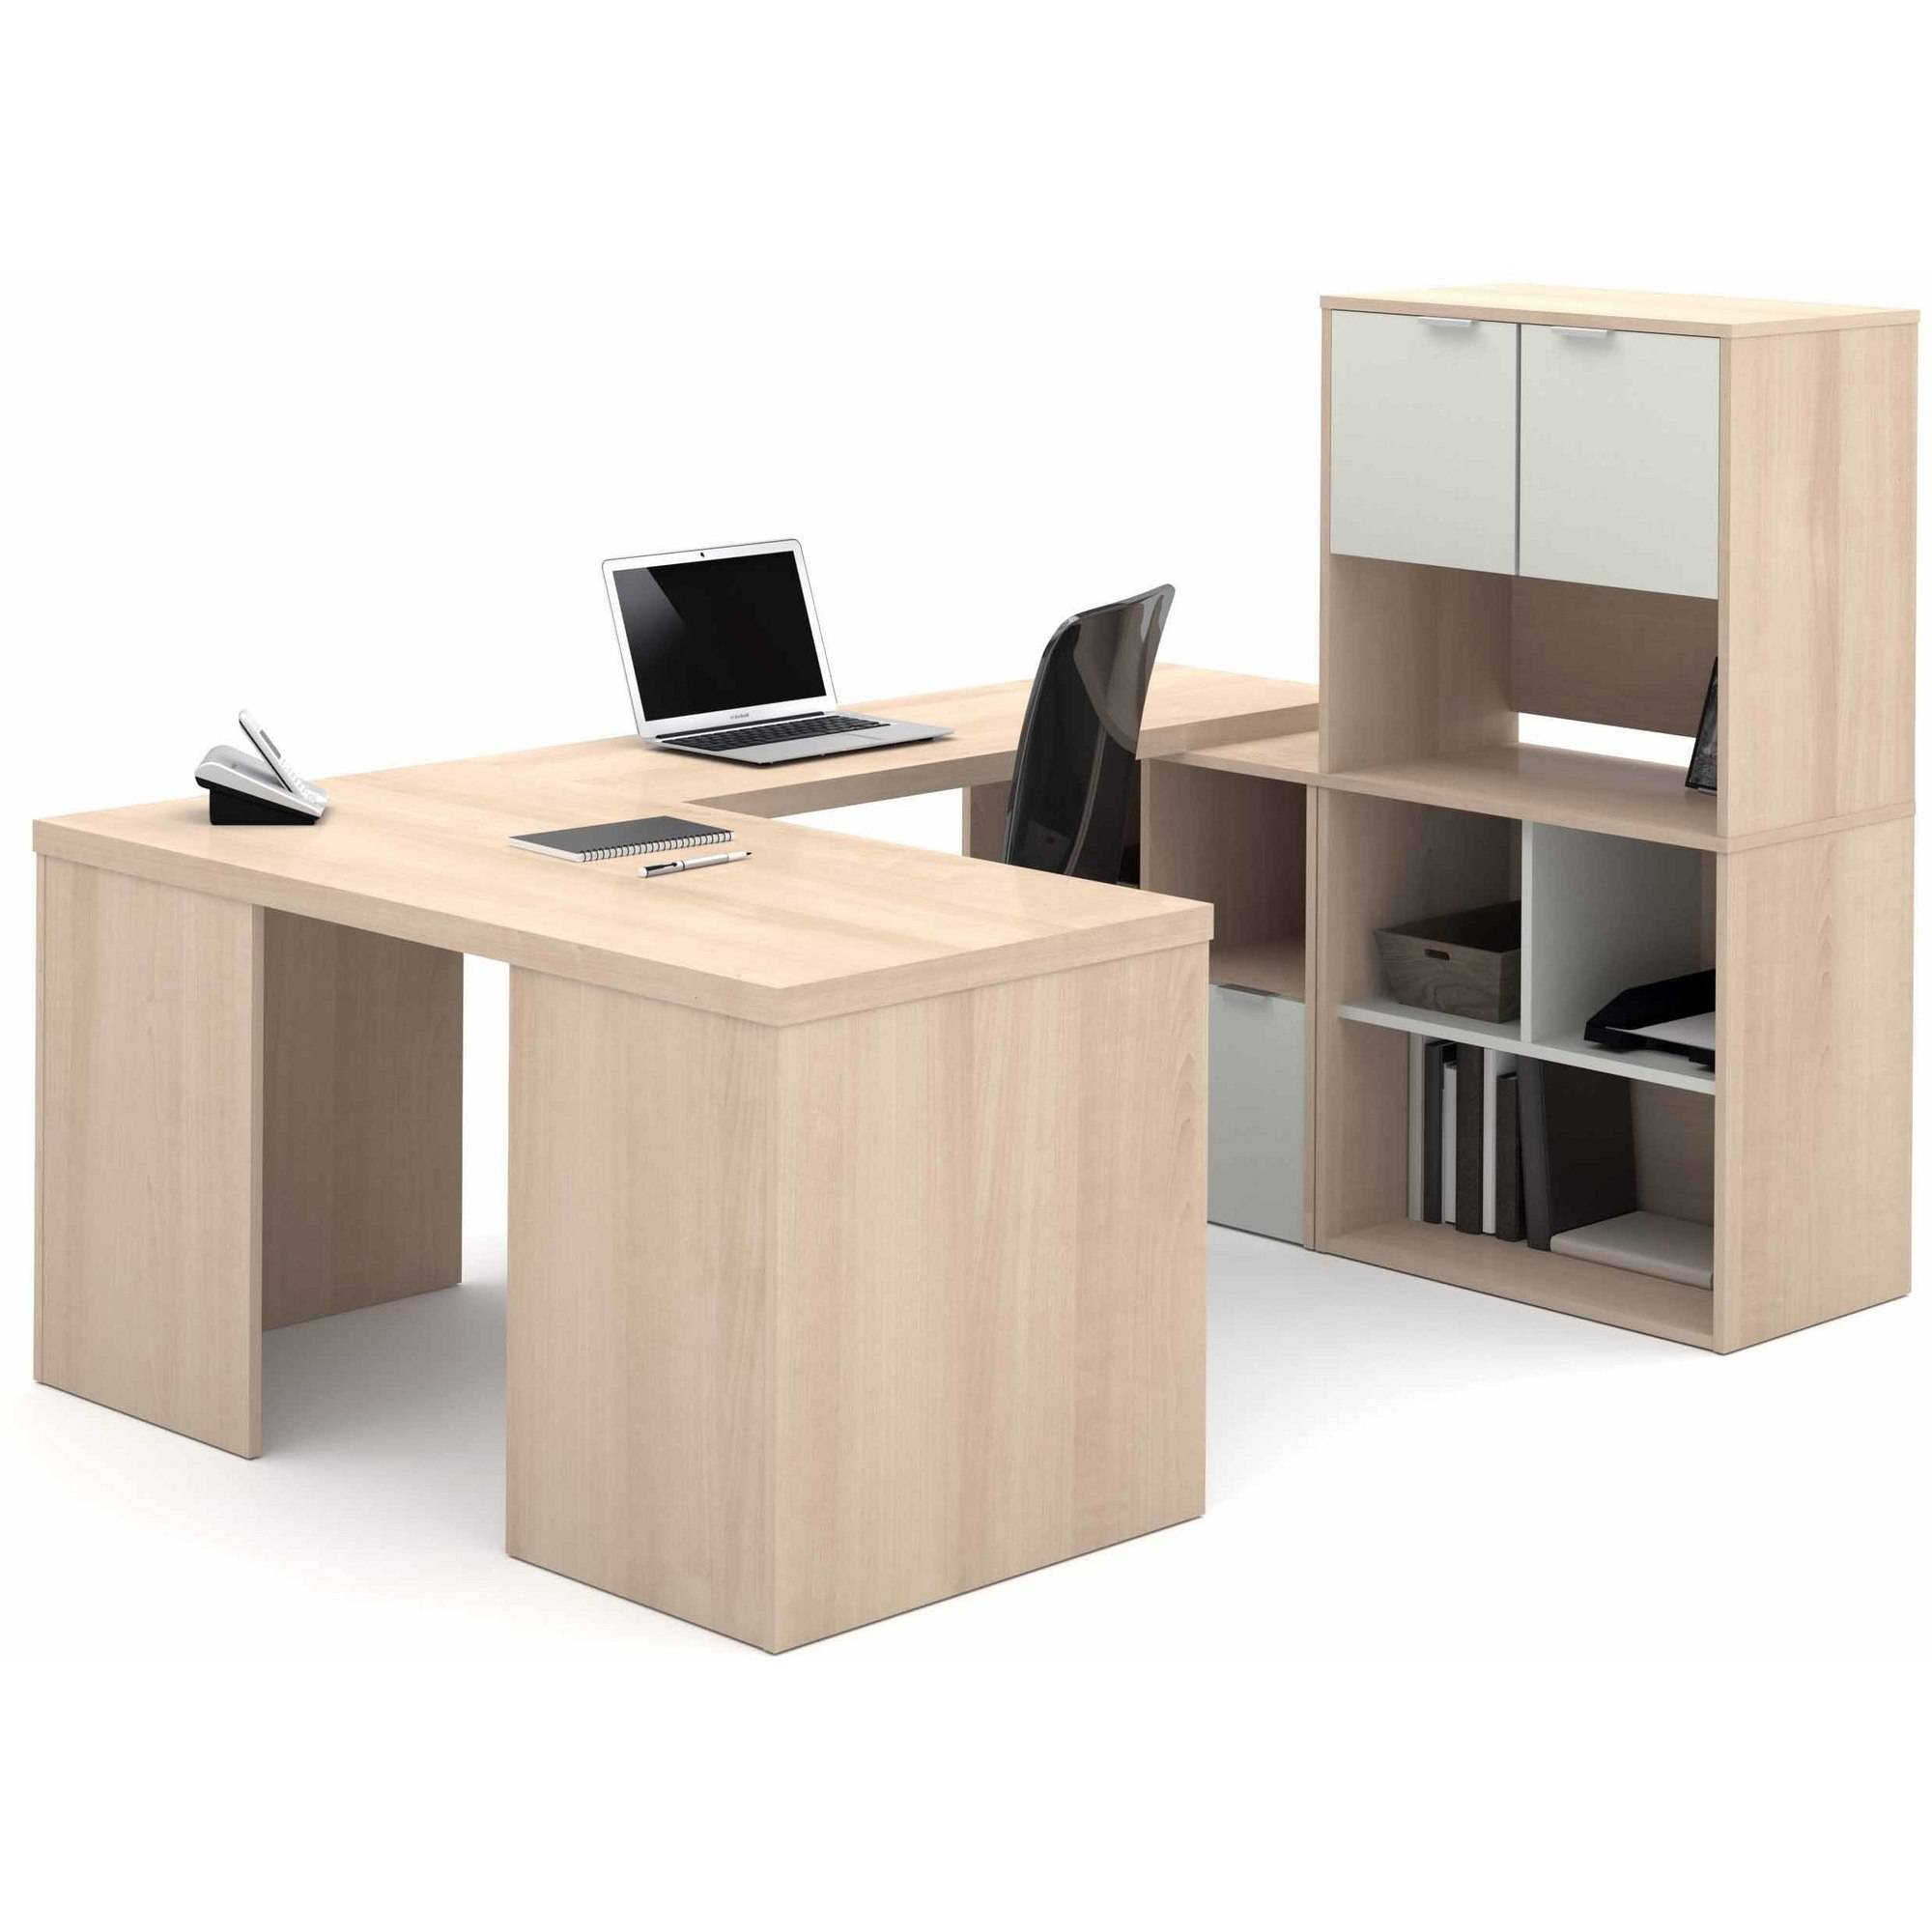 Bestar i3 by Bestar U-Shaped Desk, Multiple Colors